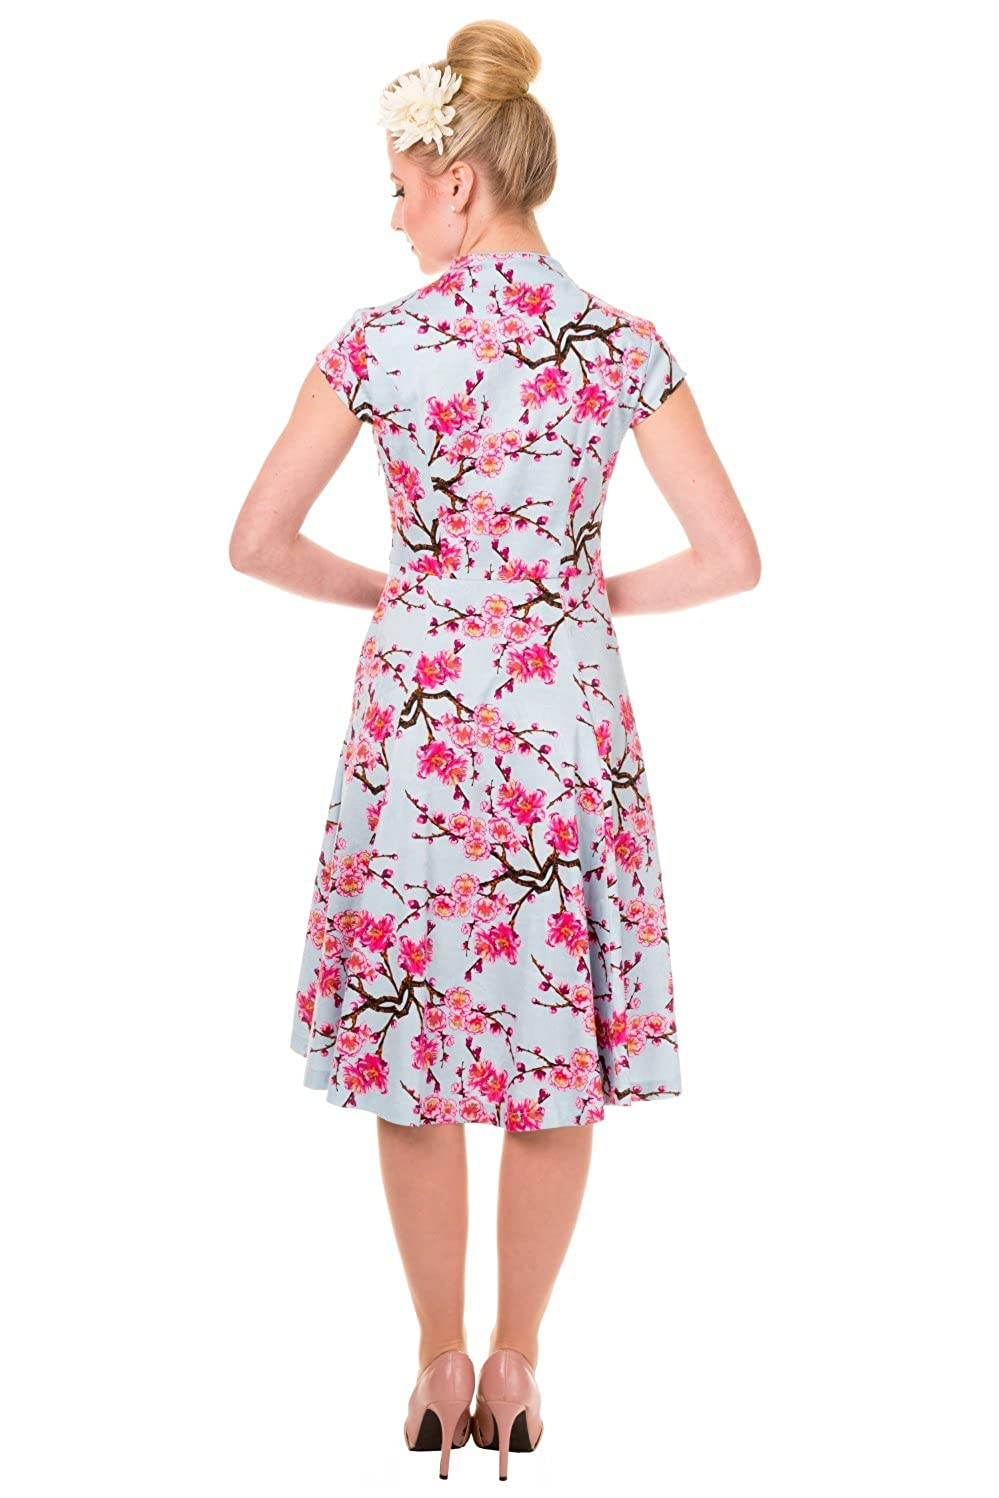 fd733def1999 Banned Last Dance Cherry Blossom Vintage Dress at Amazon Women s ...